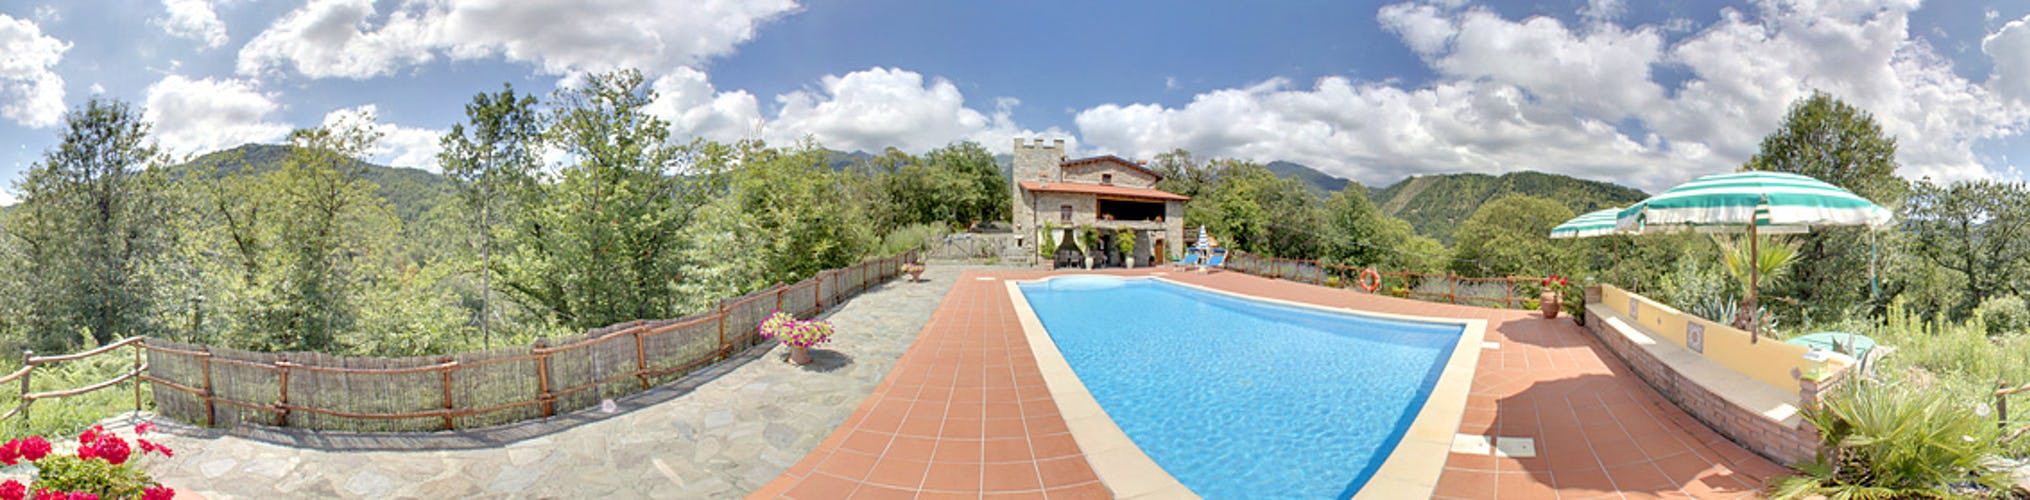 Silence and privacy prevade at the vacation villa rental Montecastello